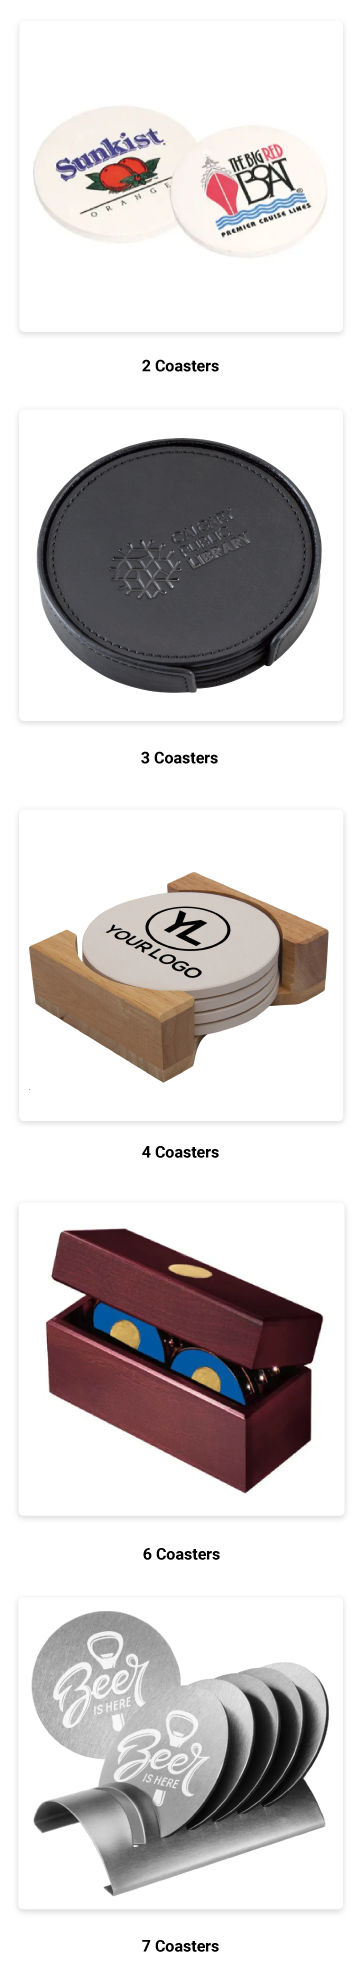 Try a Coaster Set